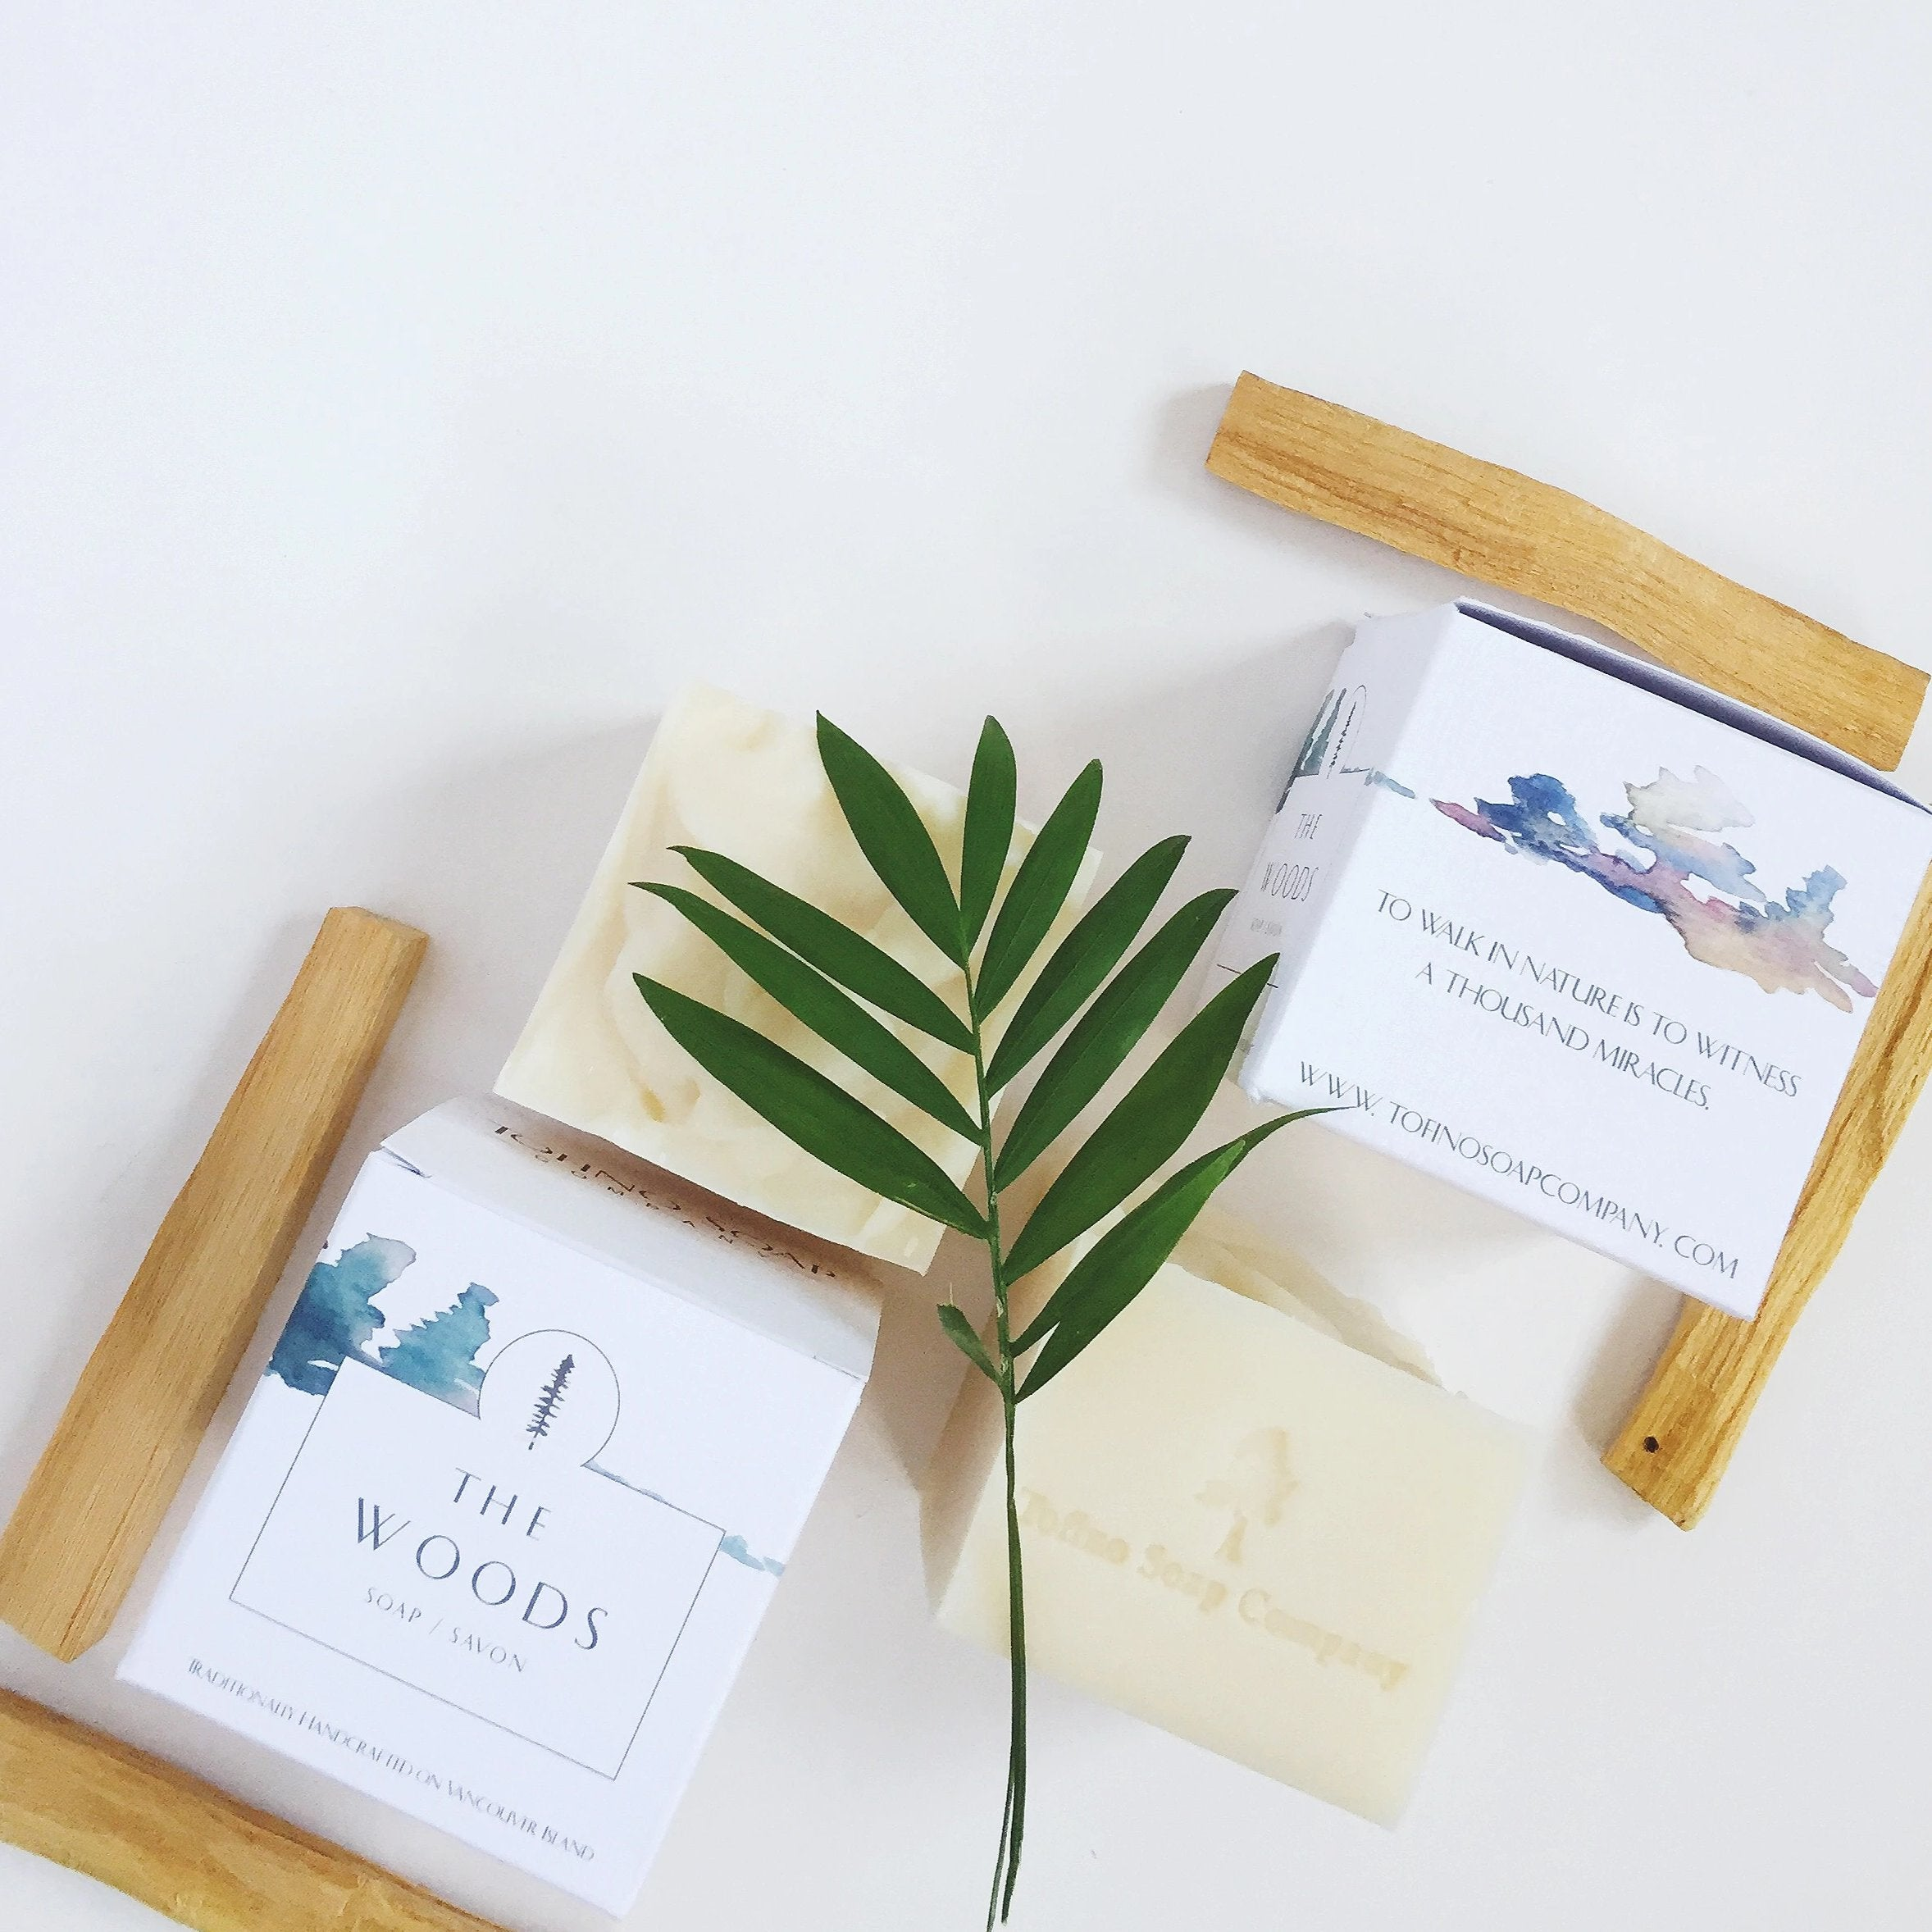 Tofino Soap | The Woods - Tofino Soap Company ®